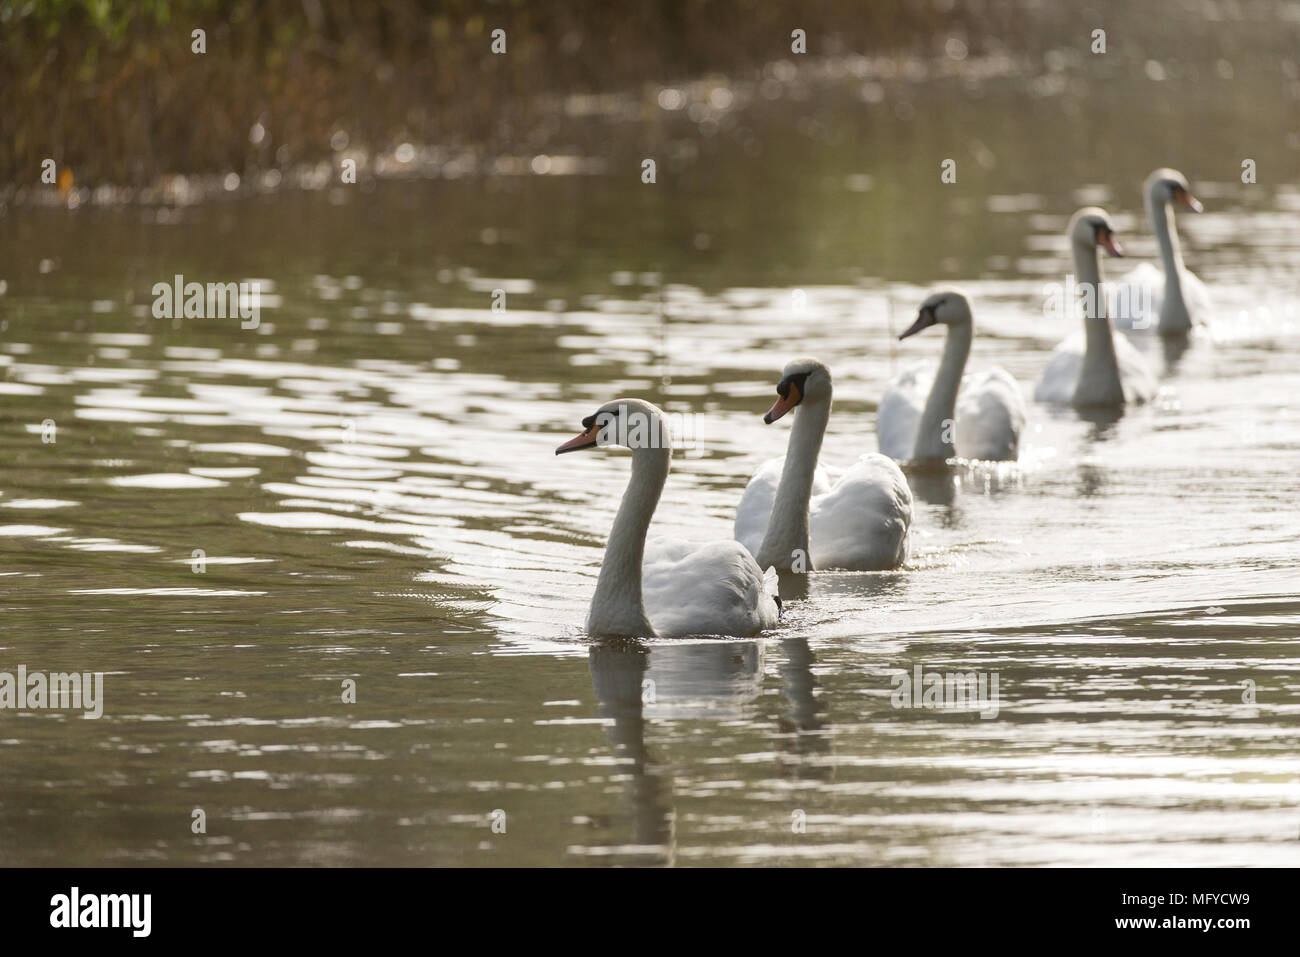 Swans swimming in a row on a lake with evening Autumn light - Stock Image